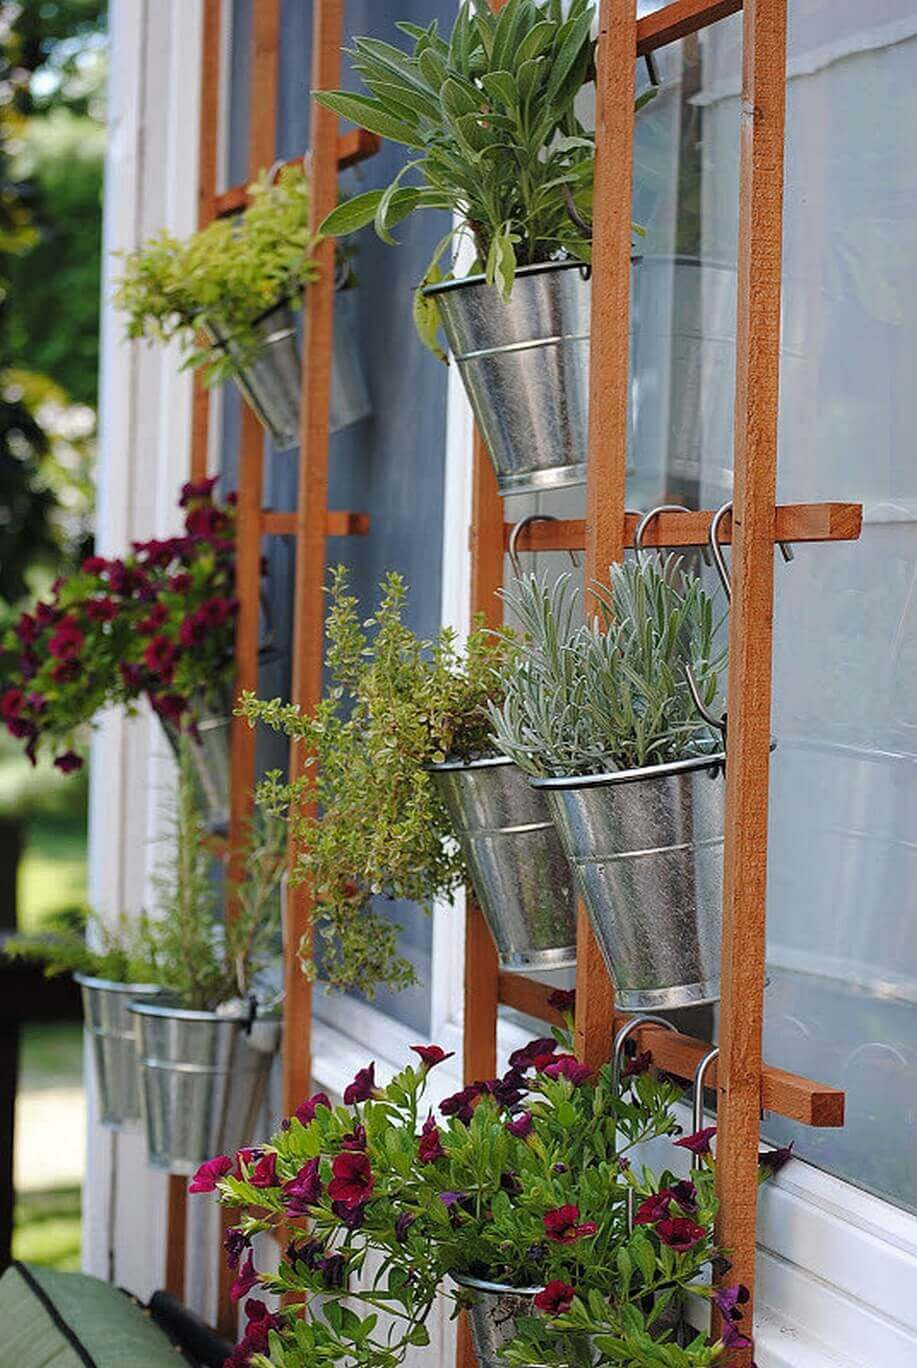 45 Best Outdoor Hanging Planter Ideas and Designs for 2017 on Hanging Plant Stand Ideas  id=83457